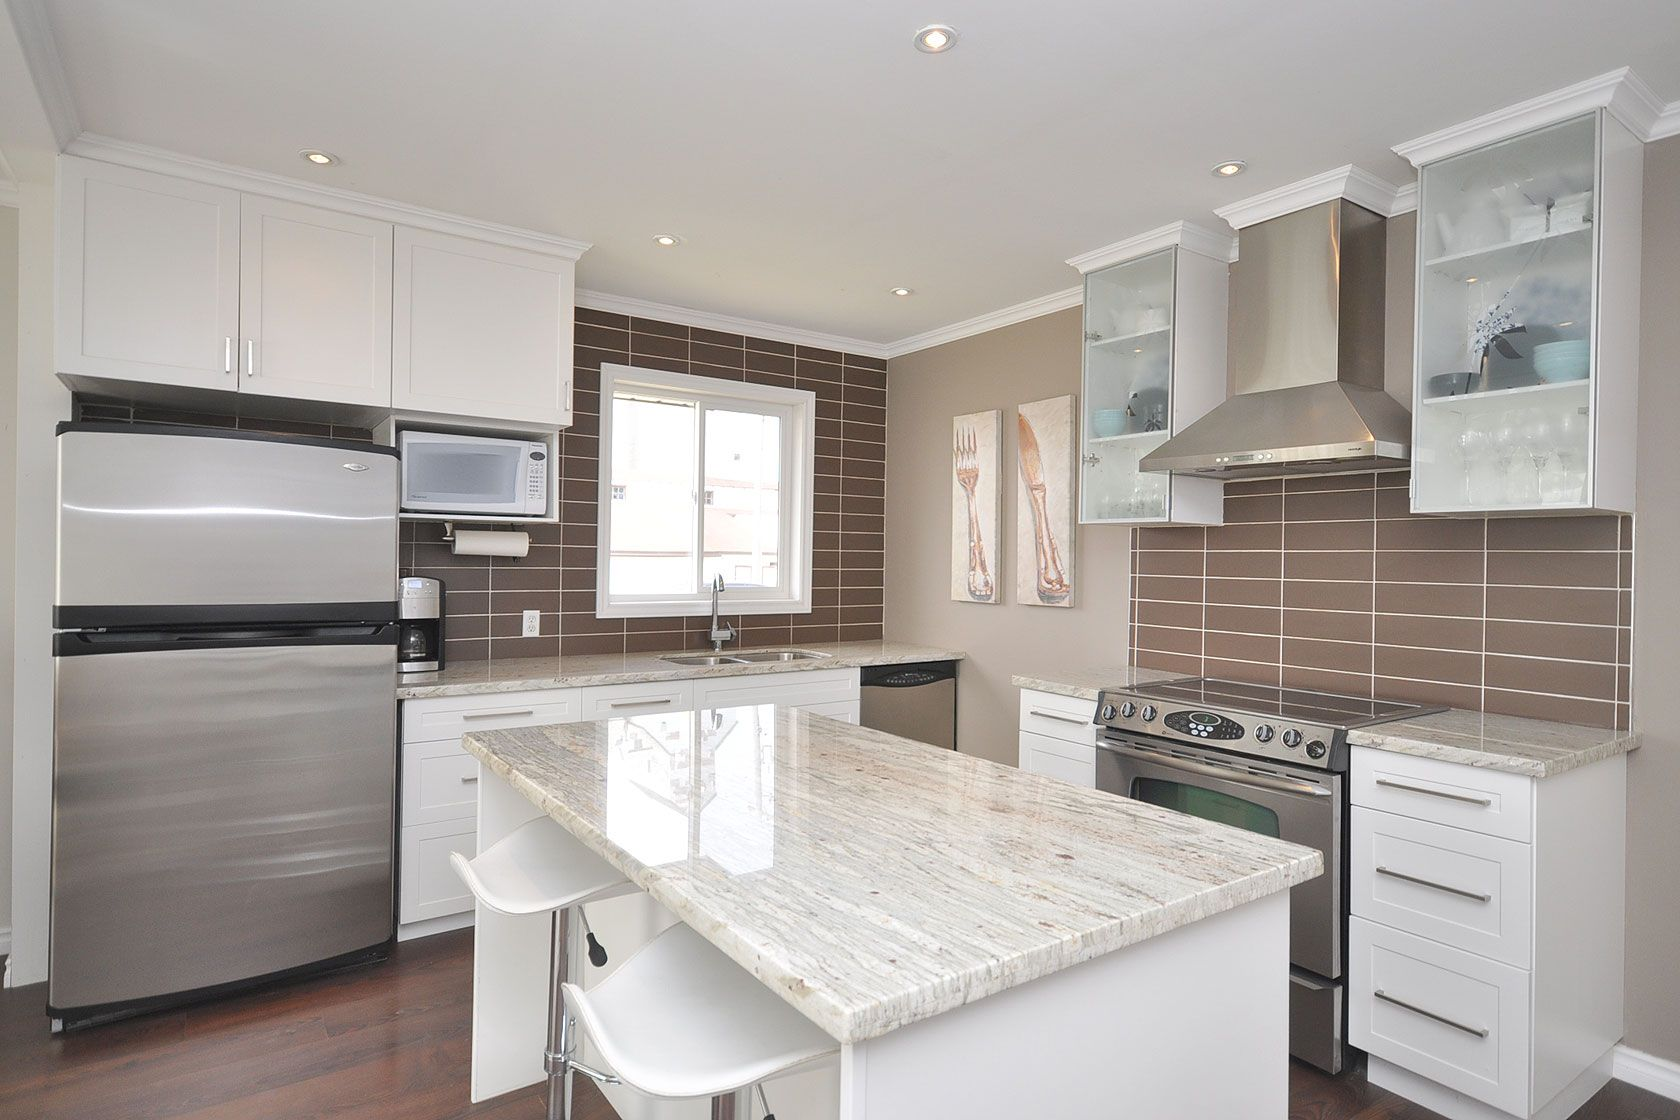 Pin By Lindsay Mcdonald Dickson On Sanford Before After White Cabinets White Countertops White Granite Countertops White Kitchen Remodeling